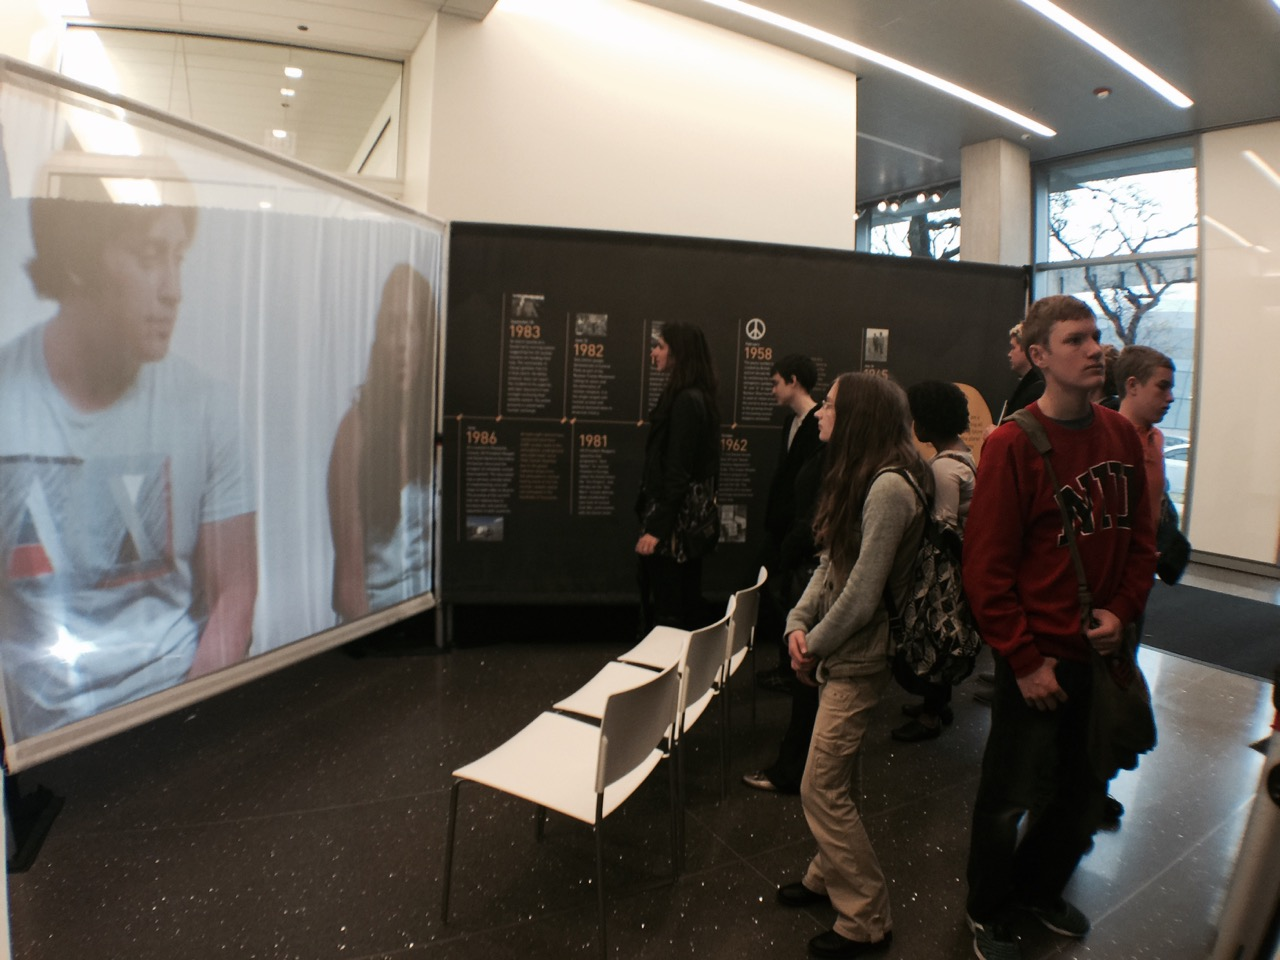 N Square Exhibit, University of Chicago